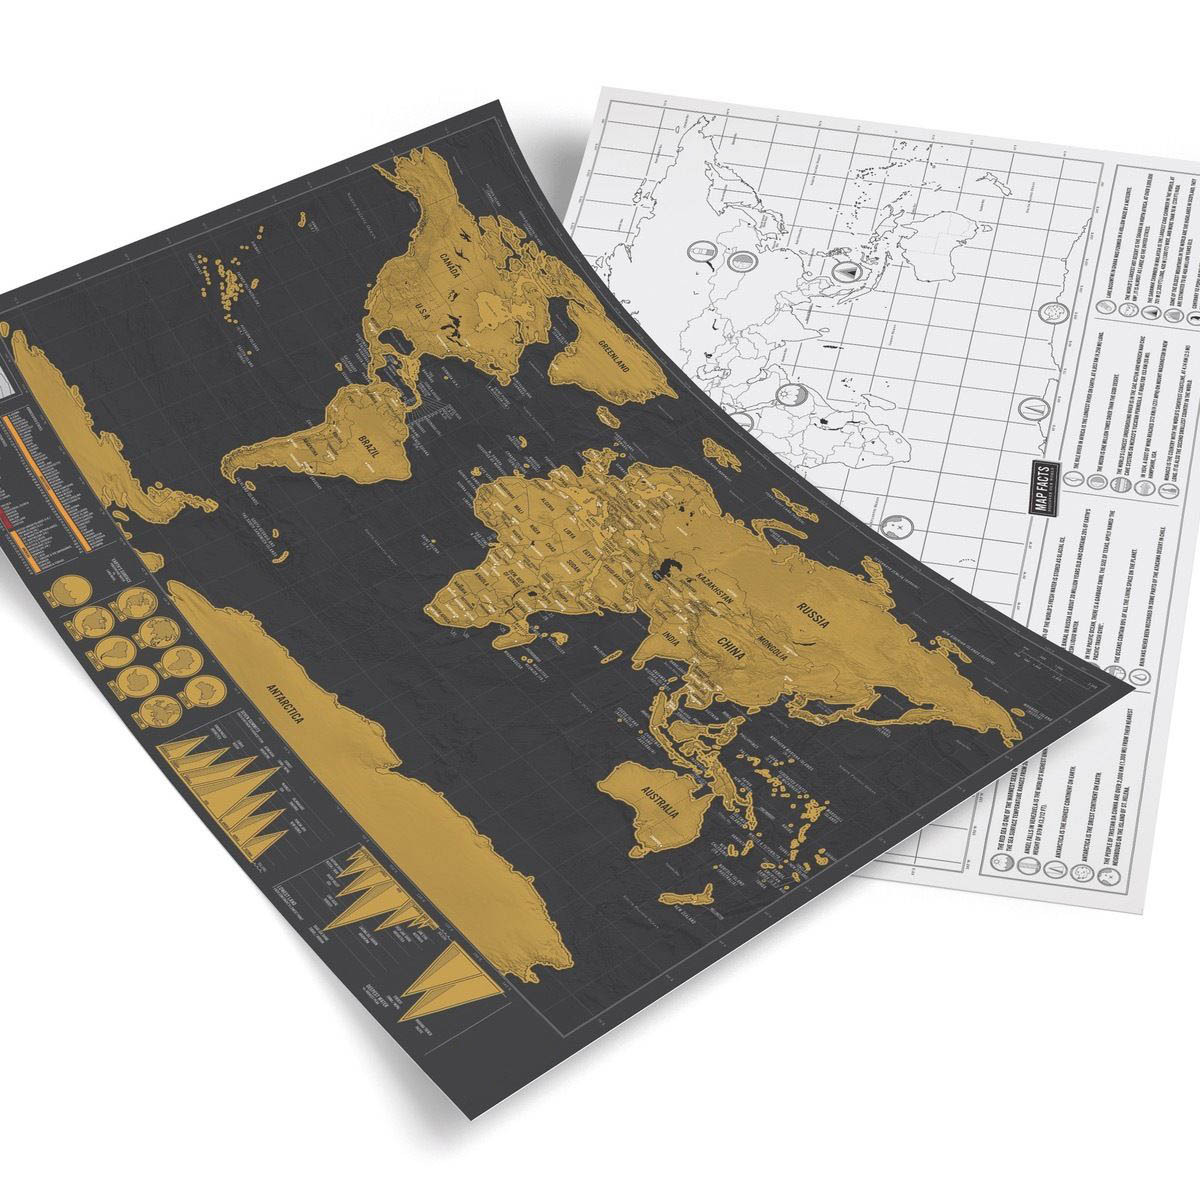 1 Pc 82.5x59.4cm Deluxe Scratch Map Travel World Map Scratch Off Foil Layer Coating Poster Journal Scratch Map